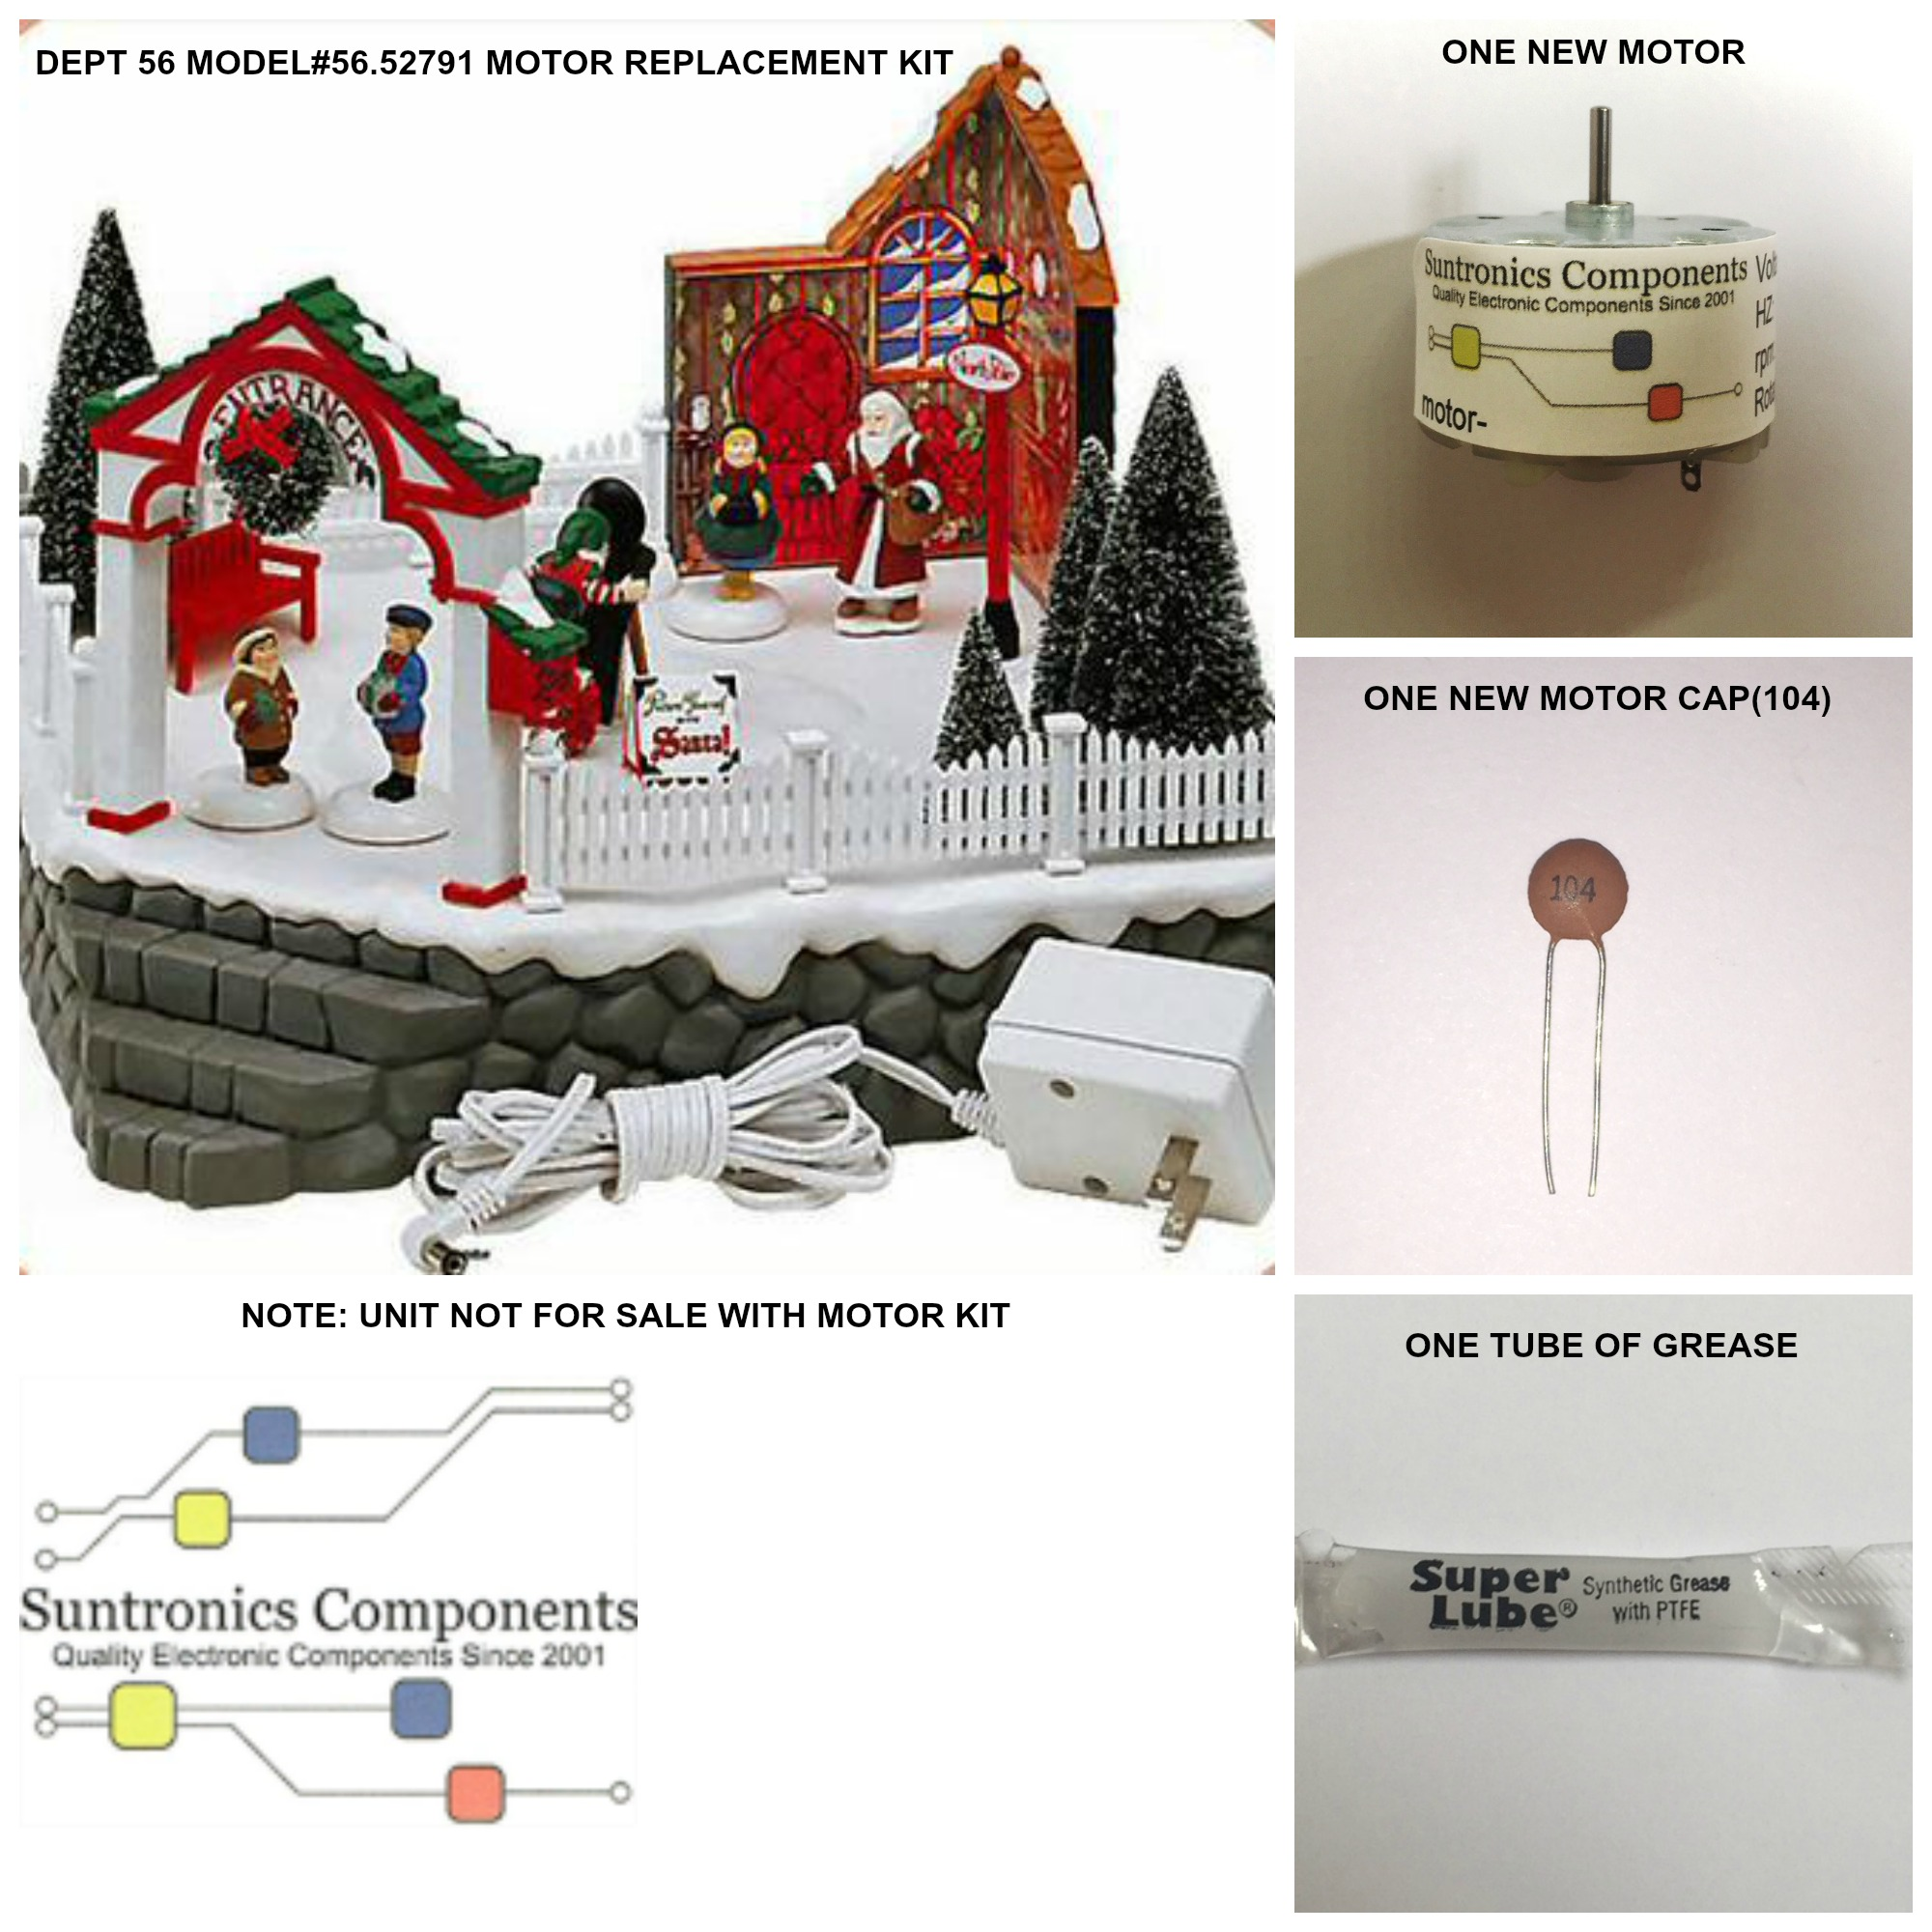 PicMonkey Image DEPT 56 PHOTO WITH SANTA MODEL#56.52791 MOTOR KIT